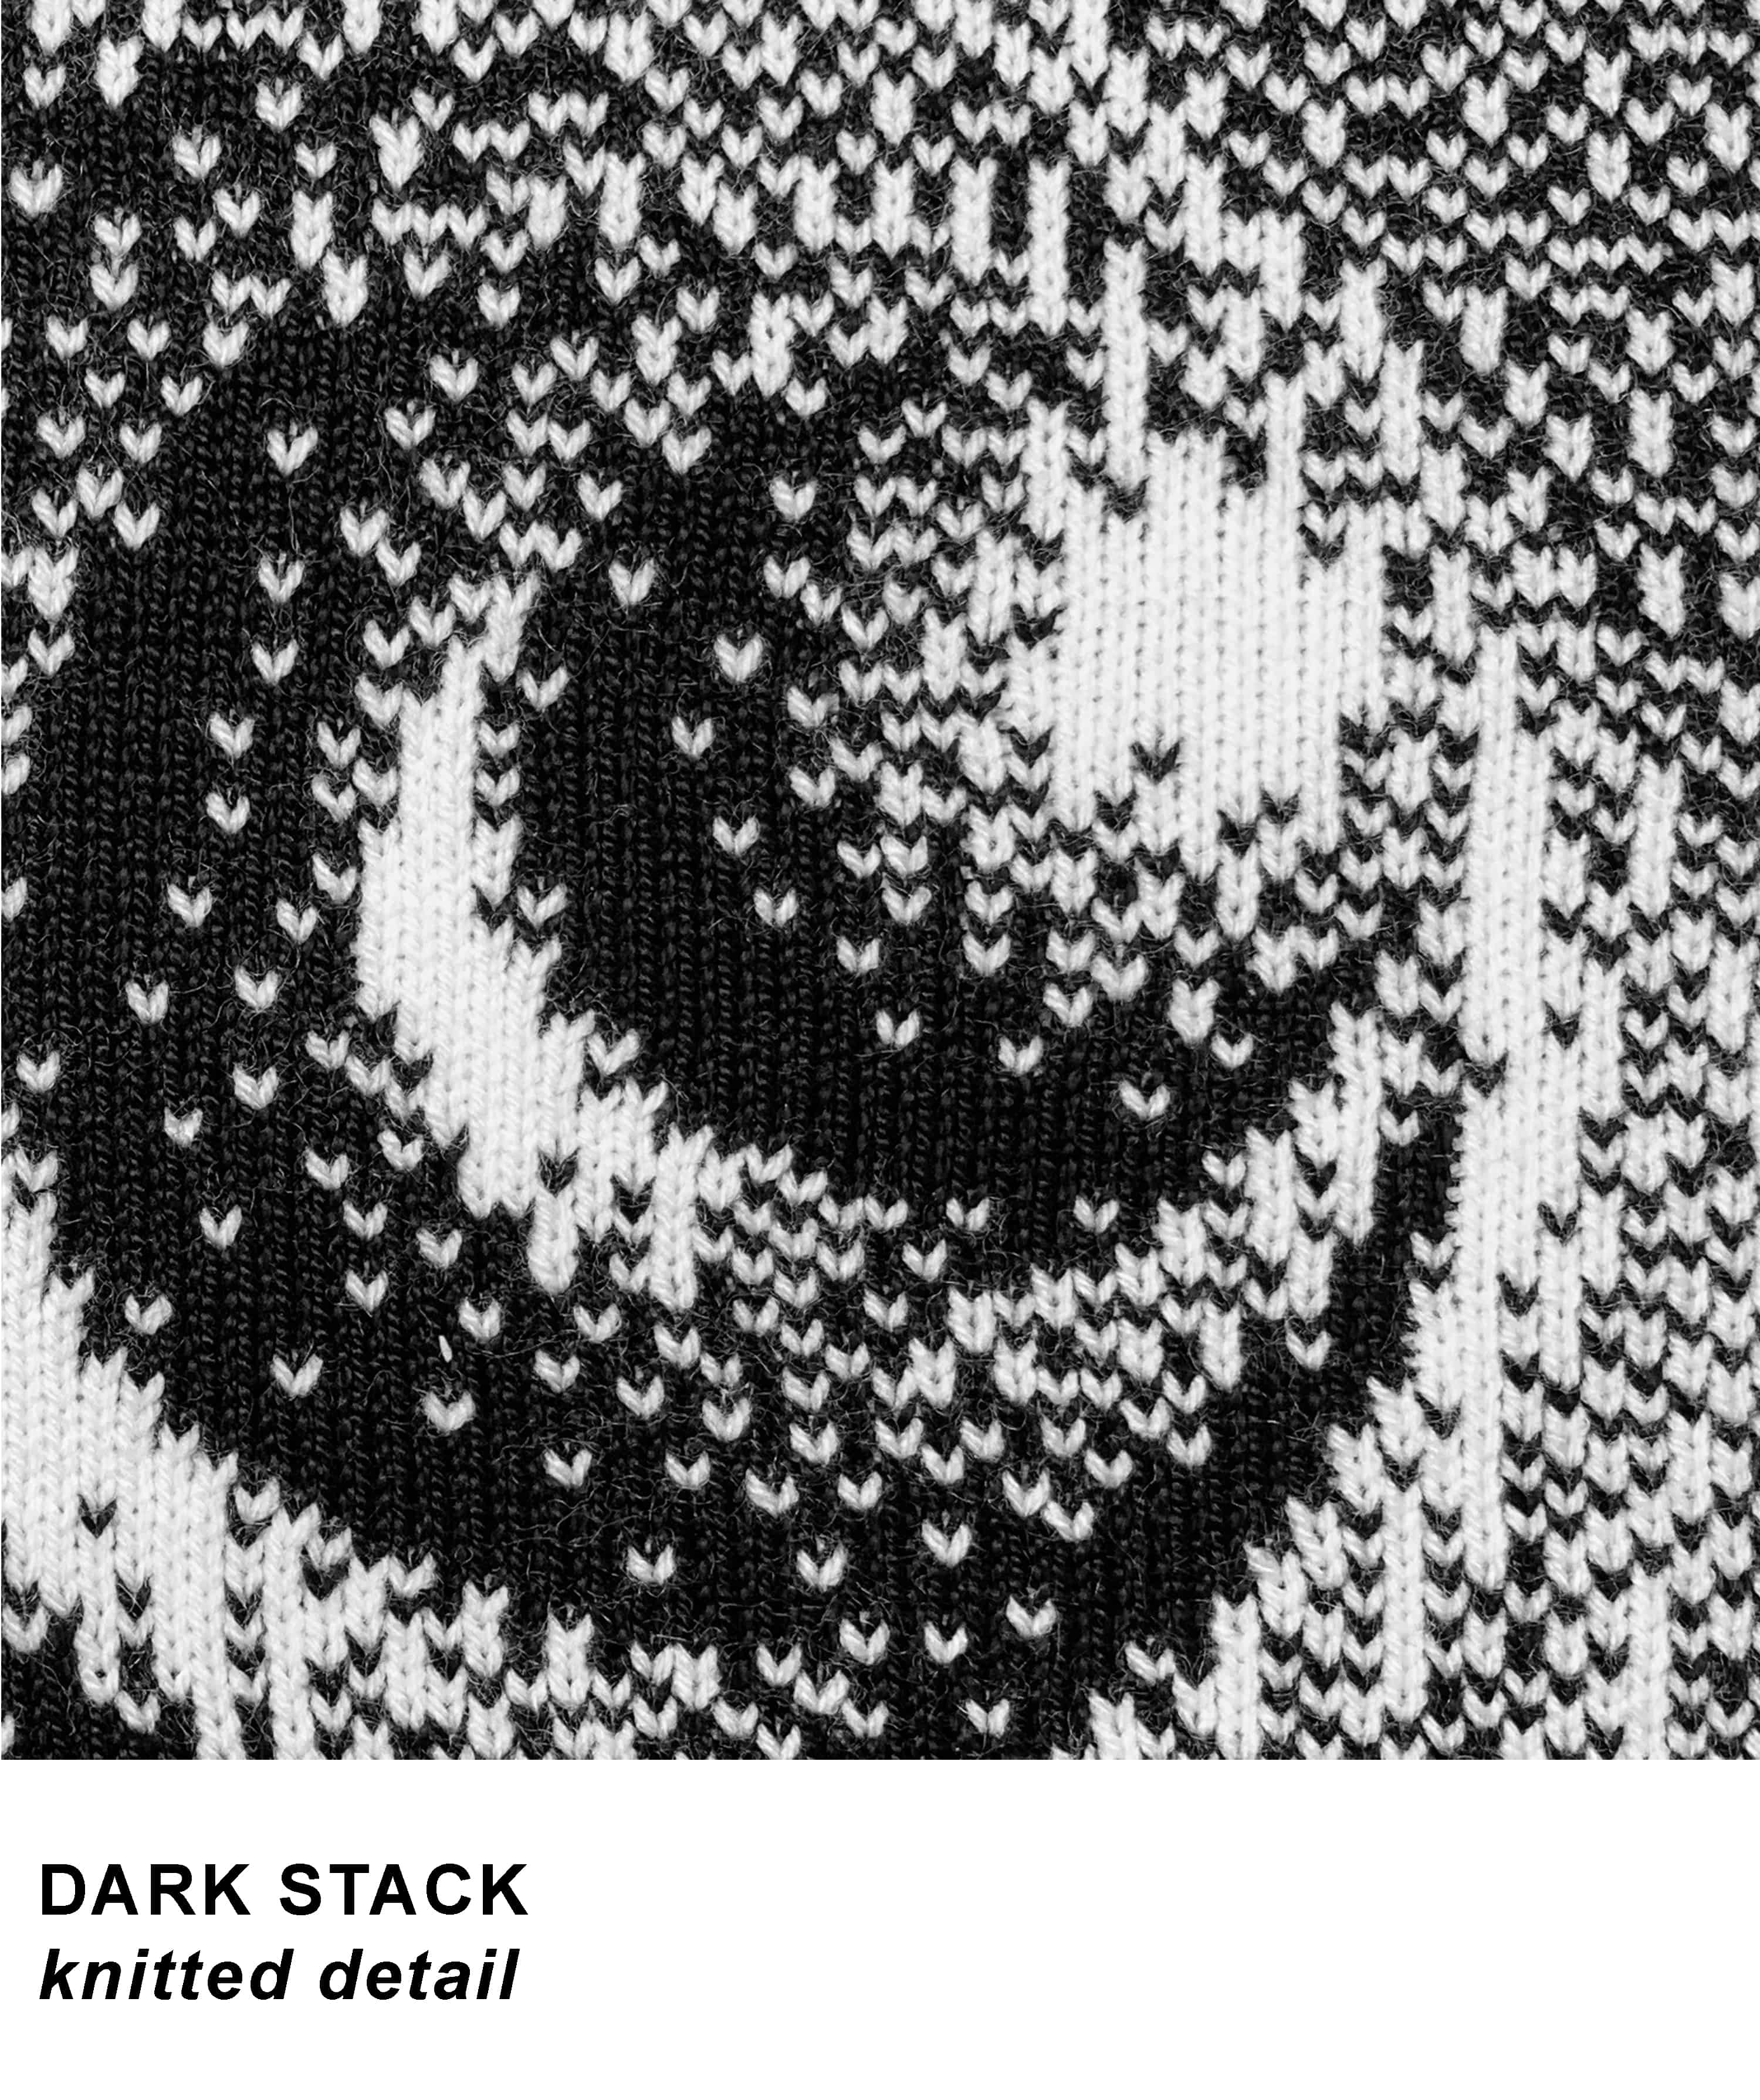 DARK STACK knitted detail template